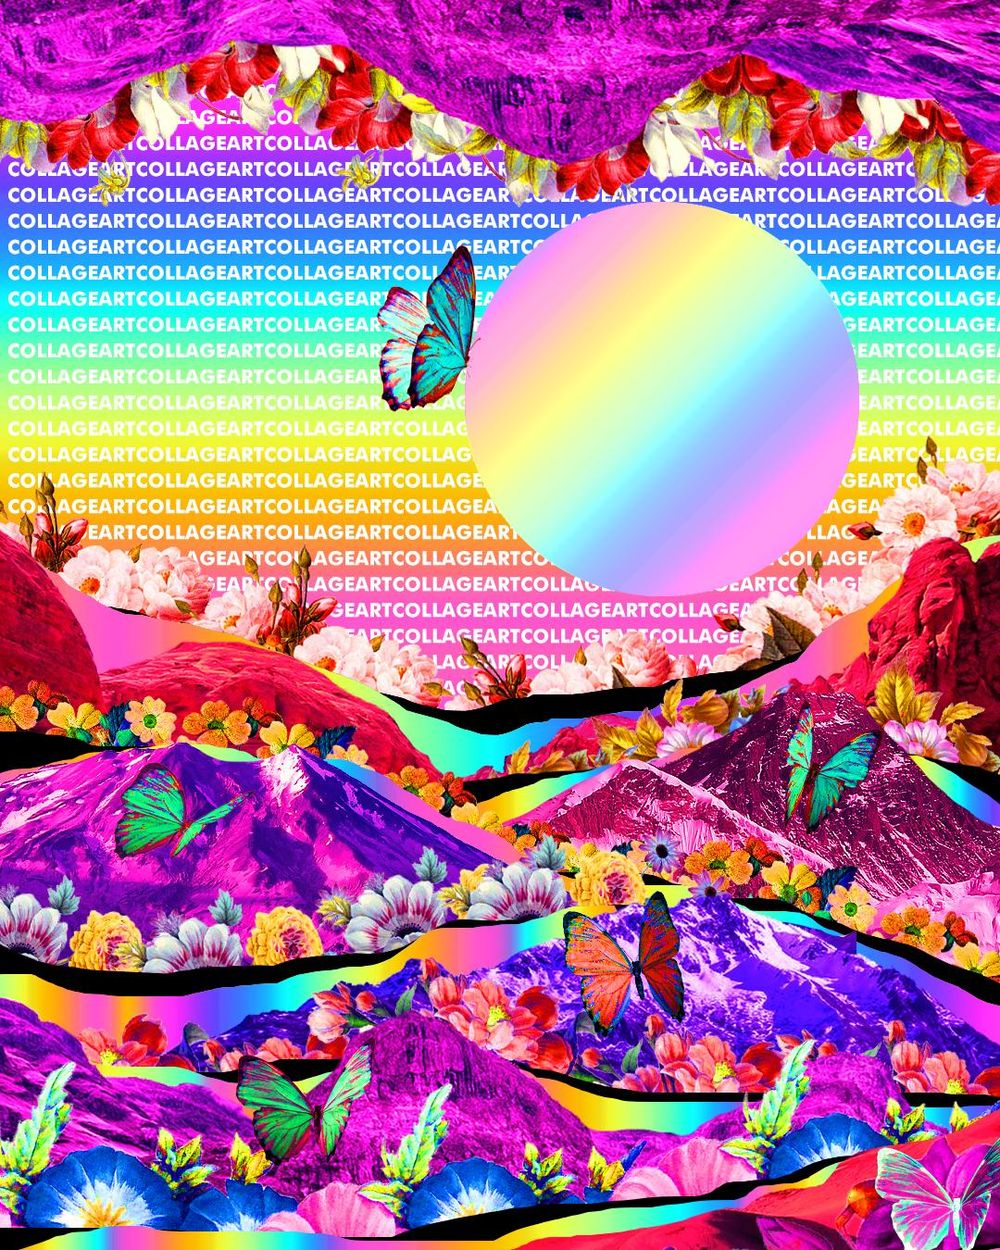 Digital Collage Art - image 1 - student project